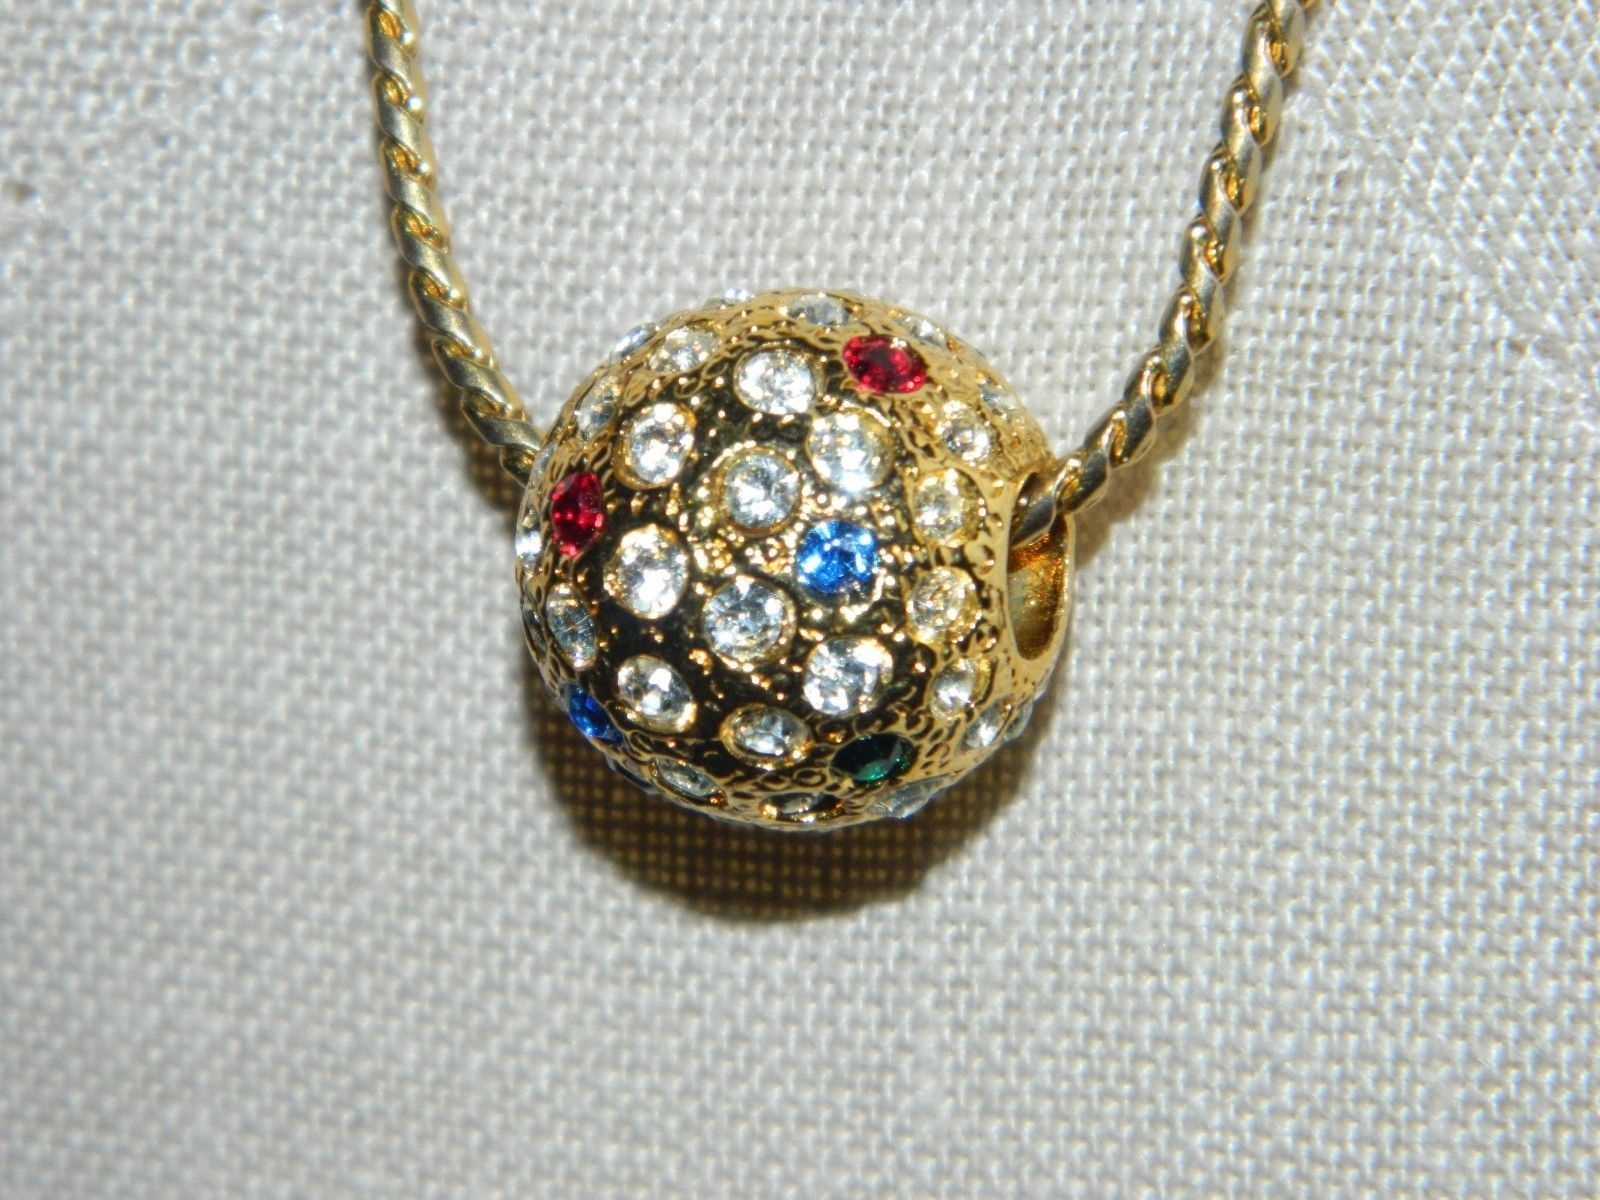 VTG NAPIER Gold Tone Long Necklace with Multi-Color Rhinestone Ball Pendant image 3